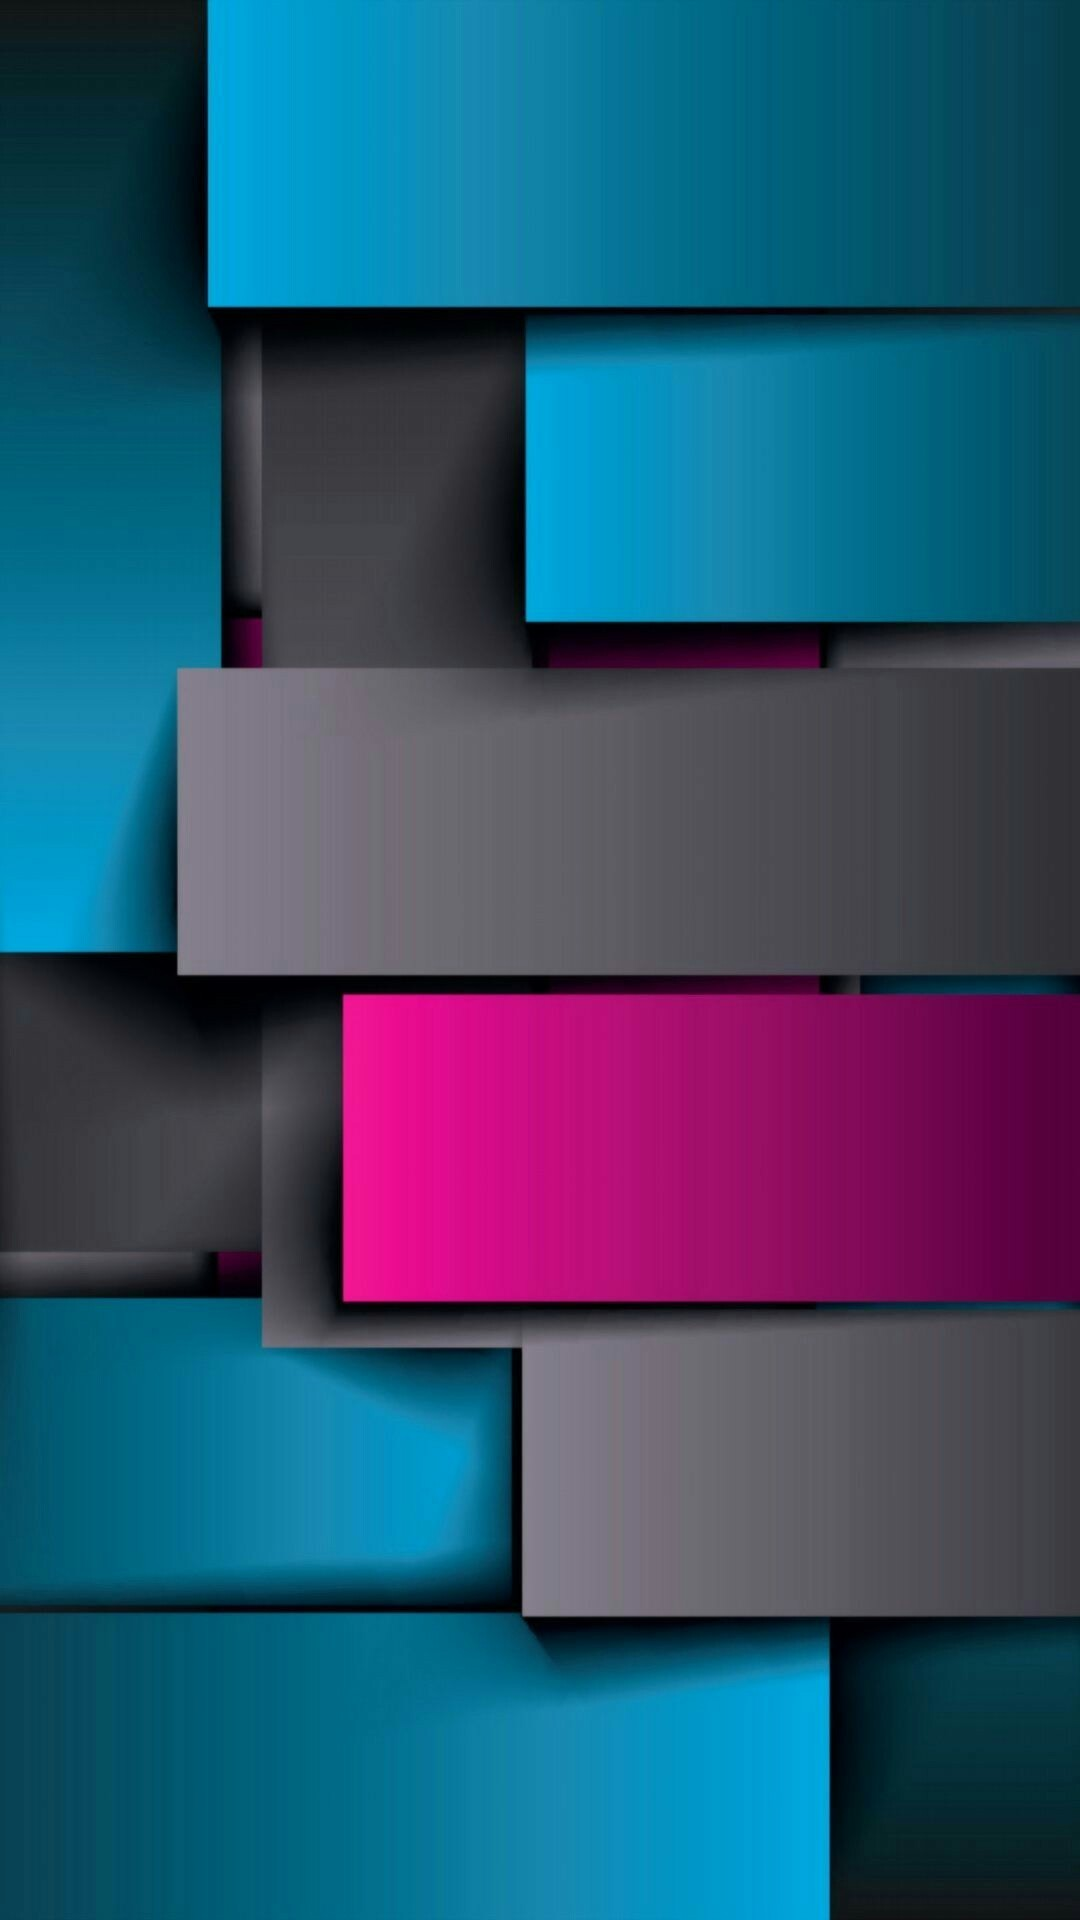 1080x1920 Teal Grey and Pink Geometric Wallpaper